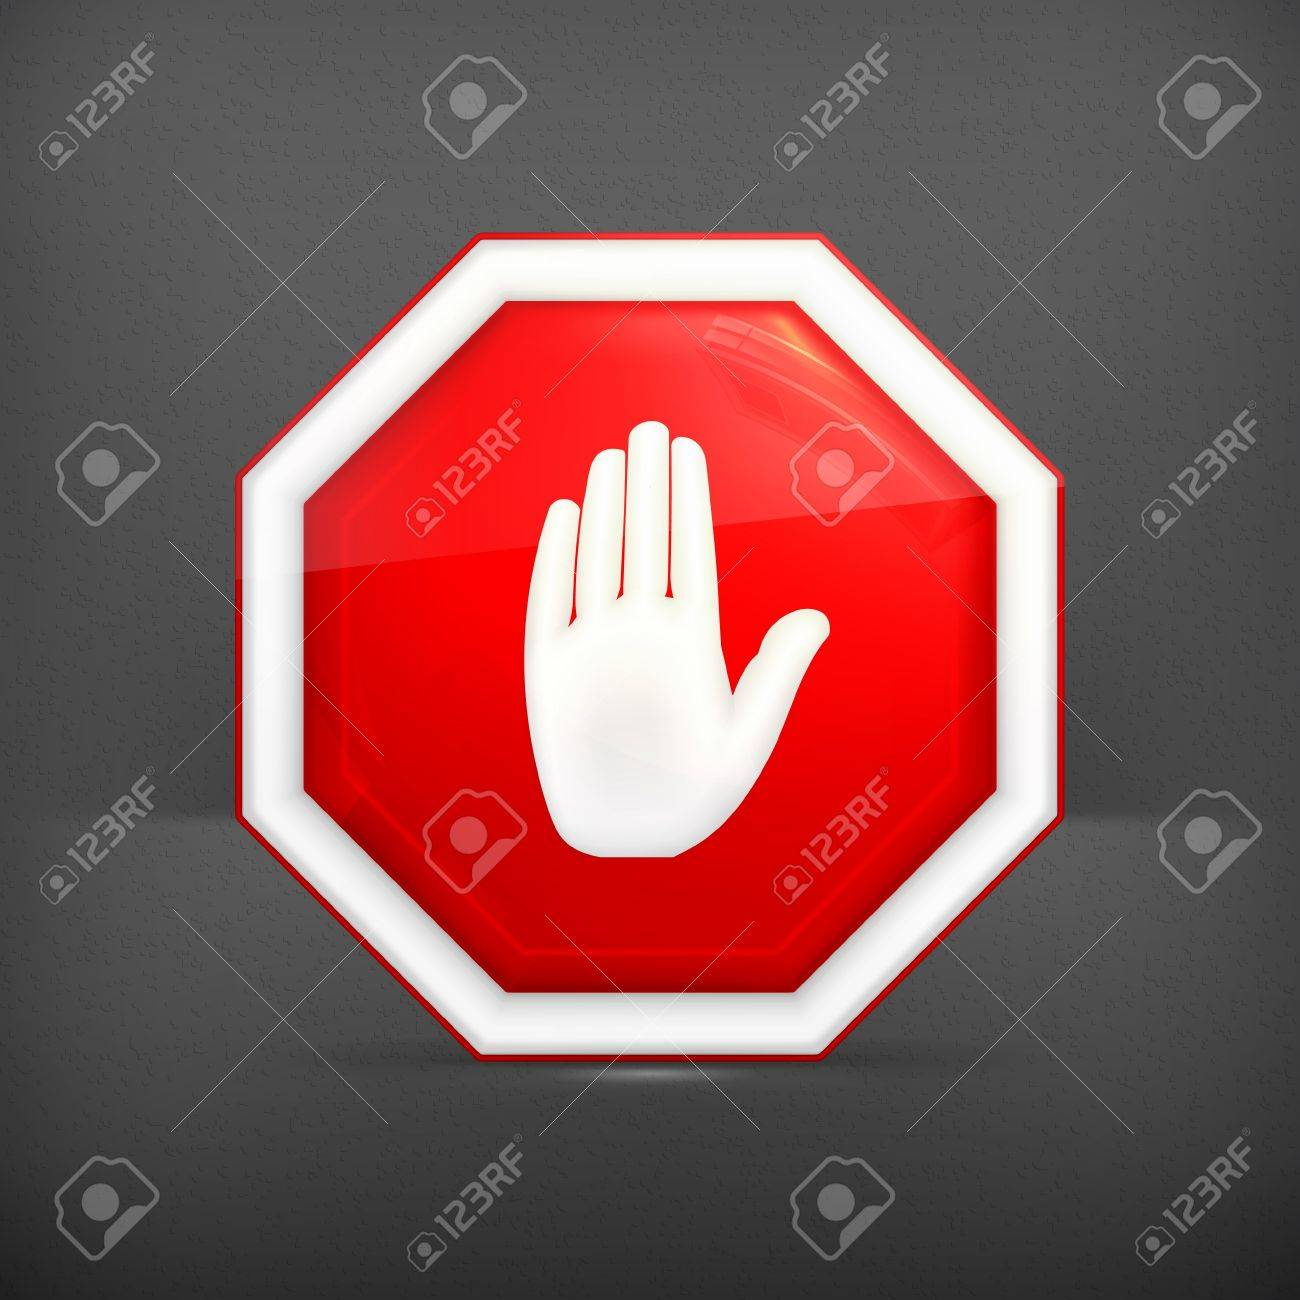 Stop sign Stock Vector - 19621436